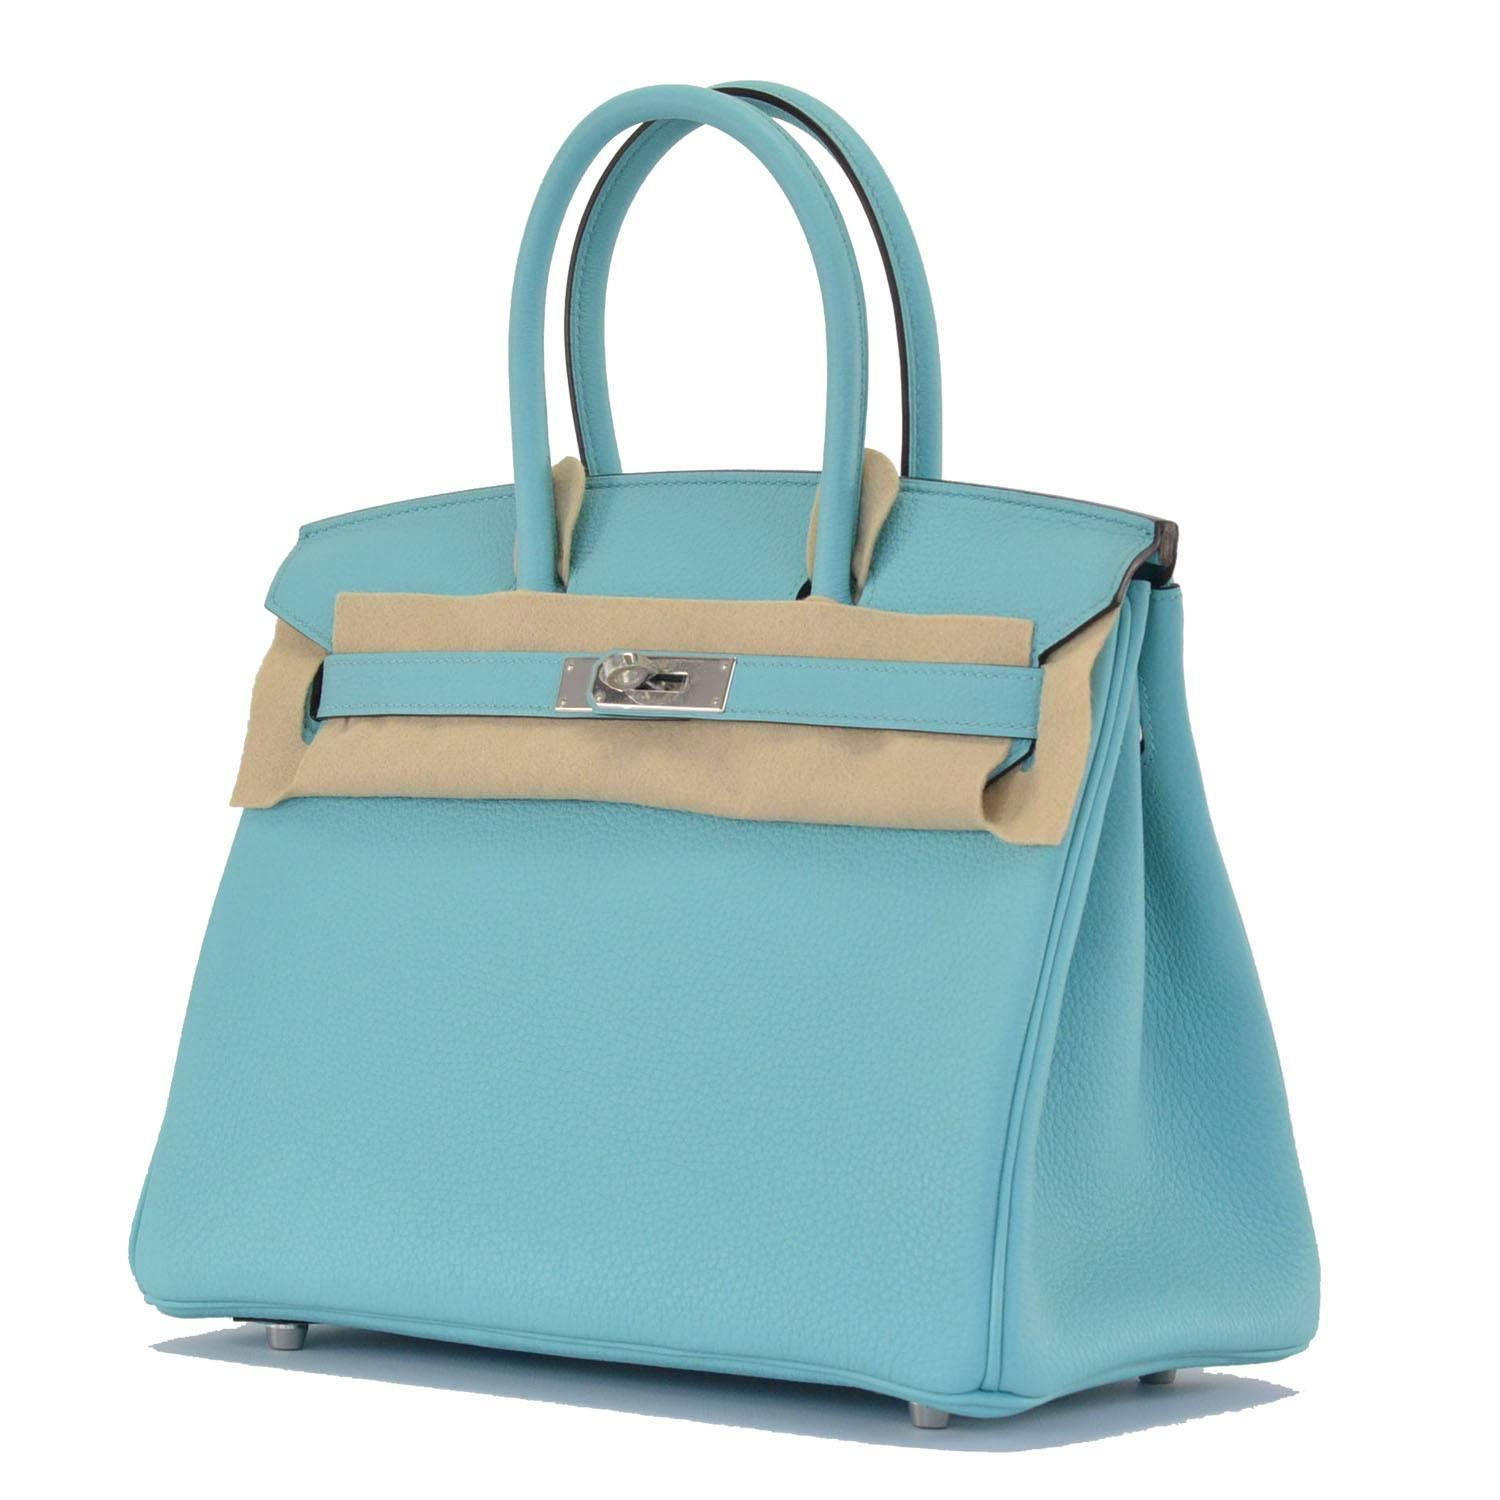 Hermes Birkin 30 Togo Blue Atoll Palladium Hardware For Sale at ...